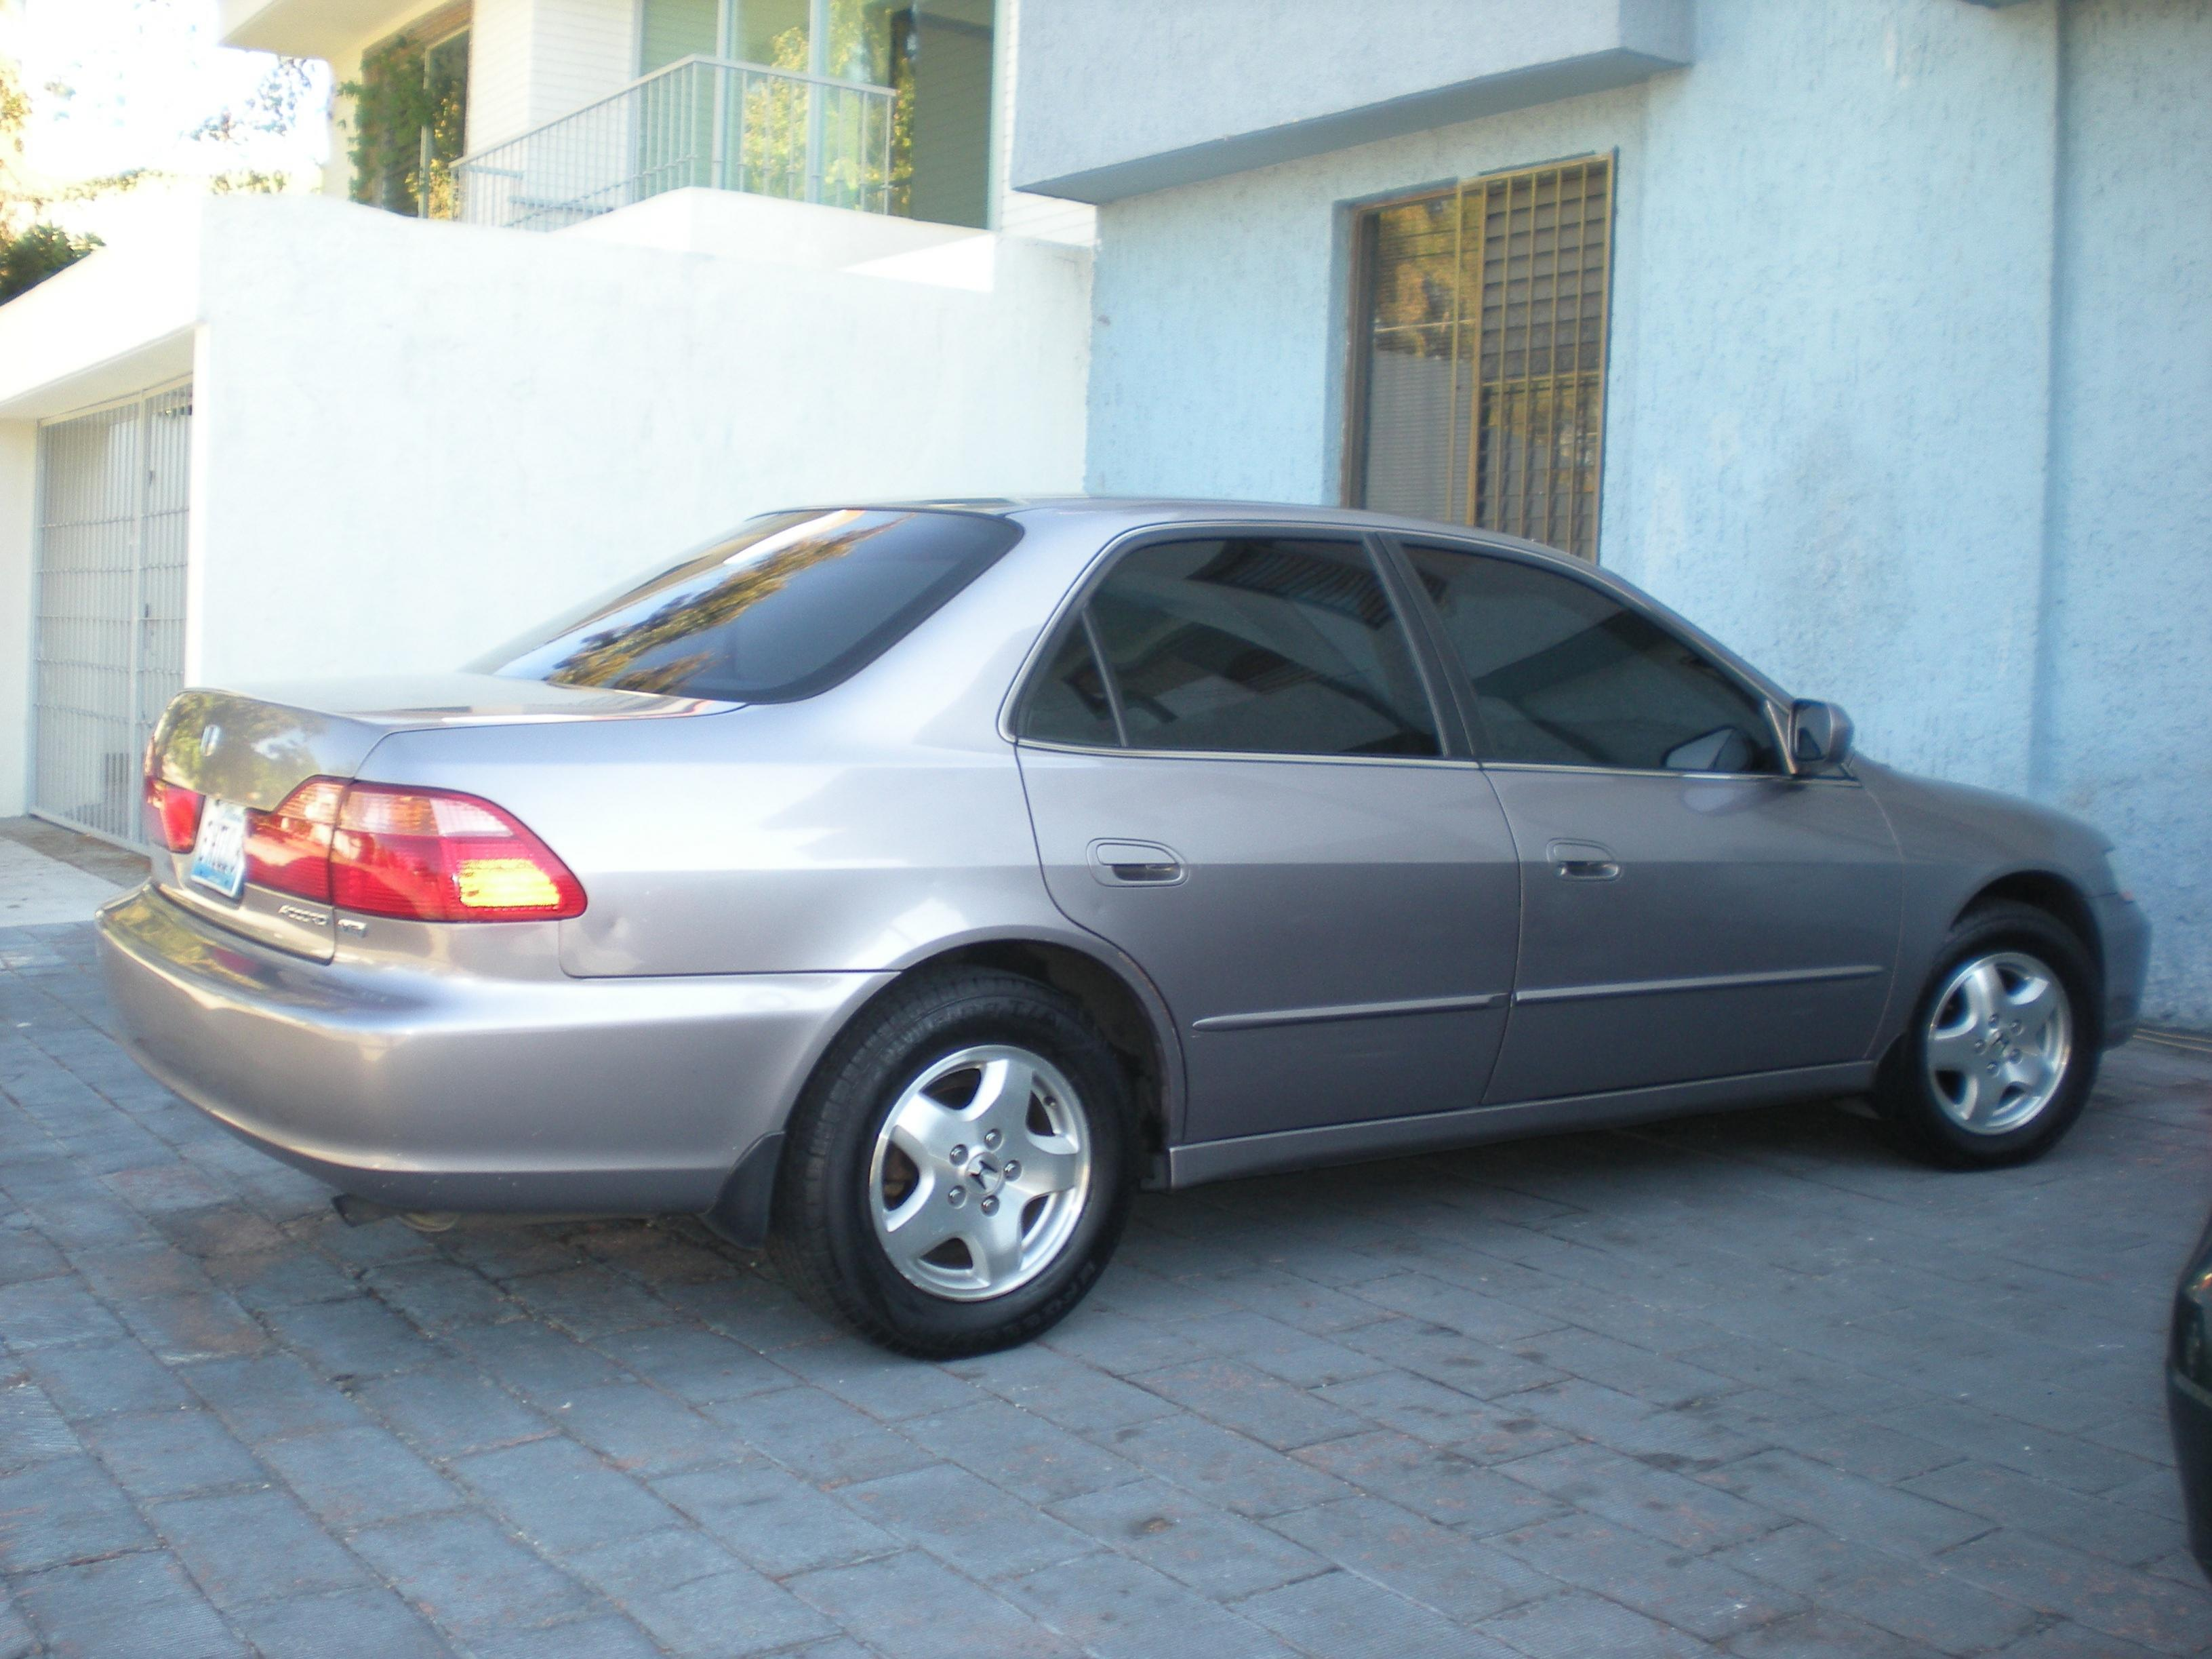 honda accord v6 2000 for sale uag medical school